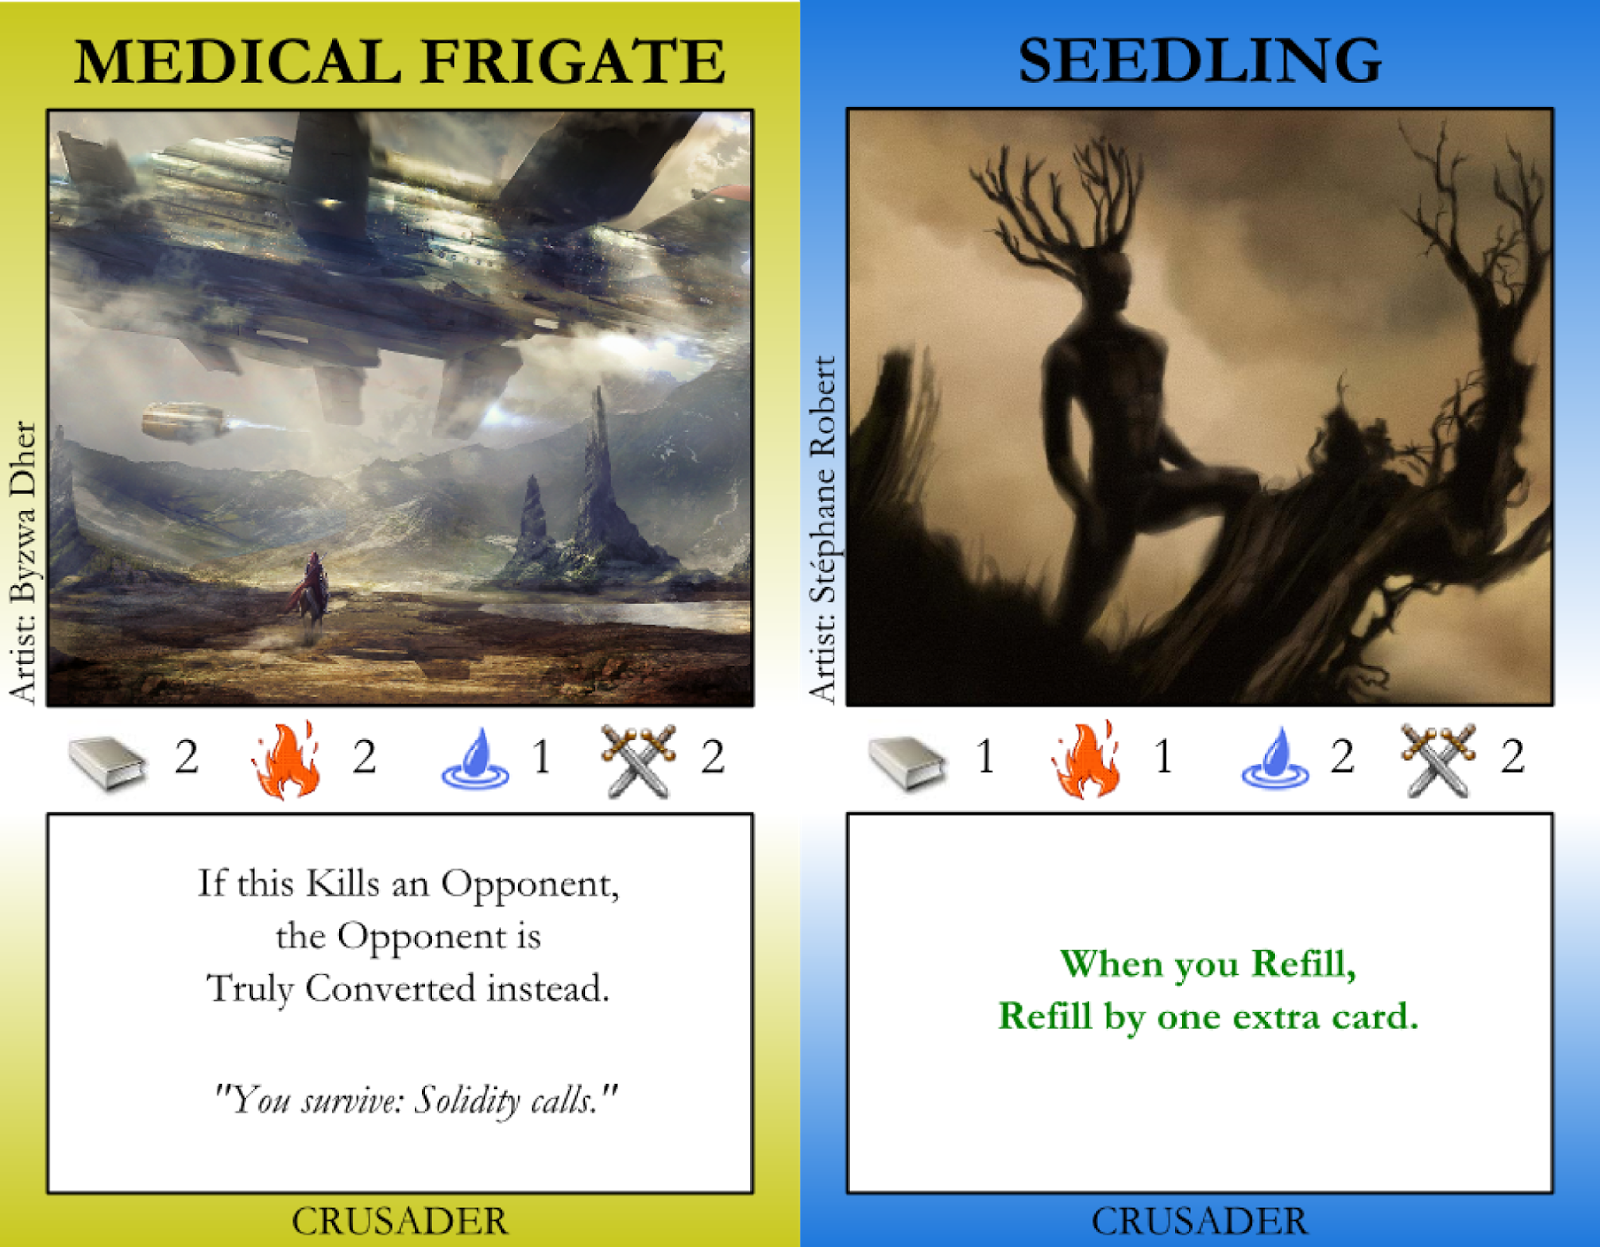 Medical Frigate, Seedling